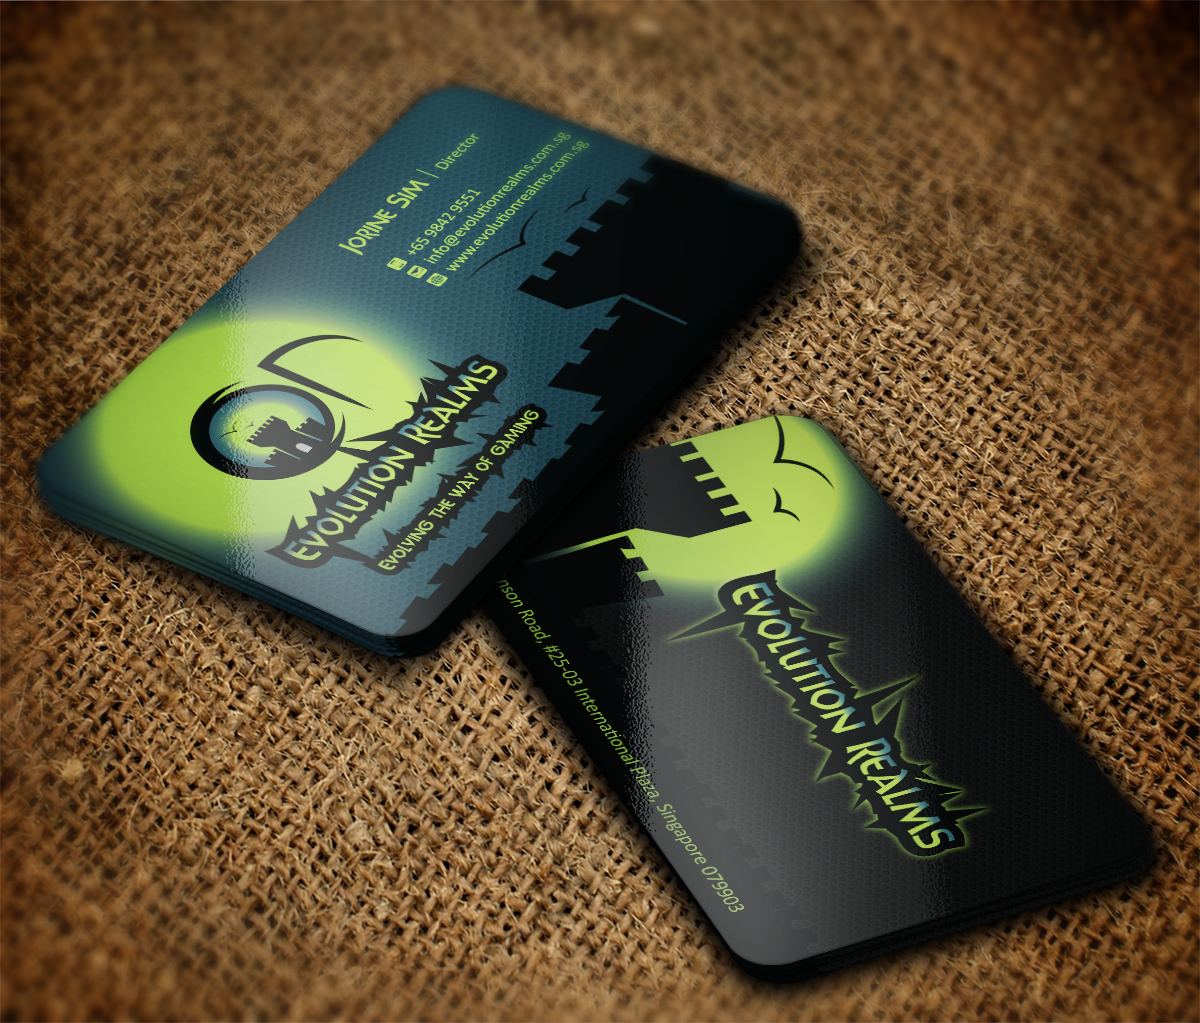 Business card design for desmond tang by mt design 4398969 for Game designer business cards